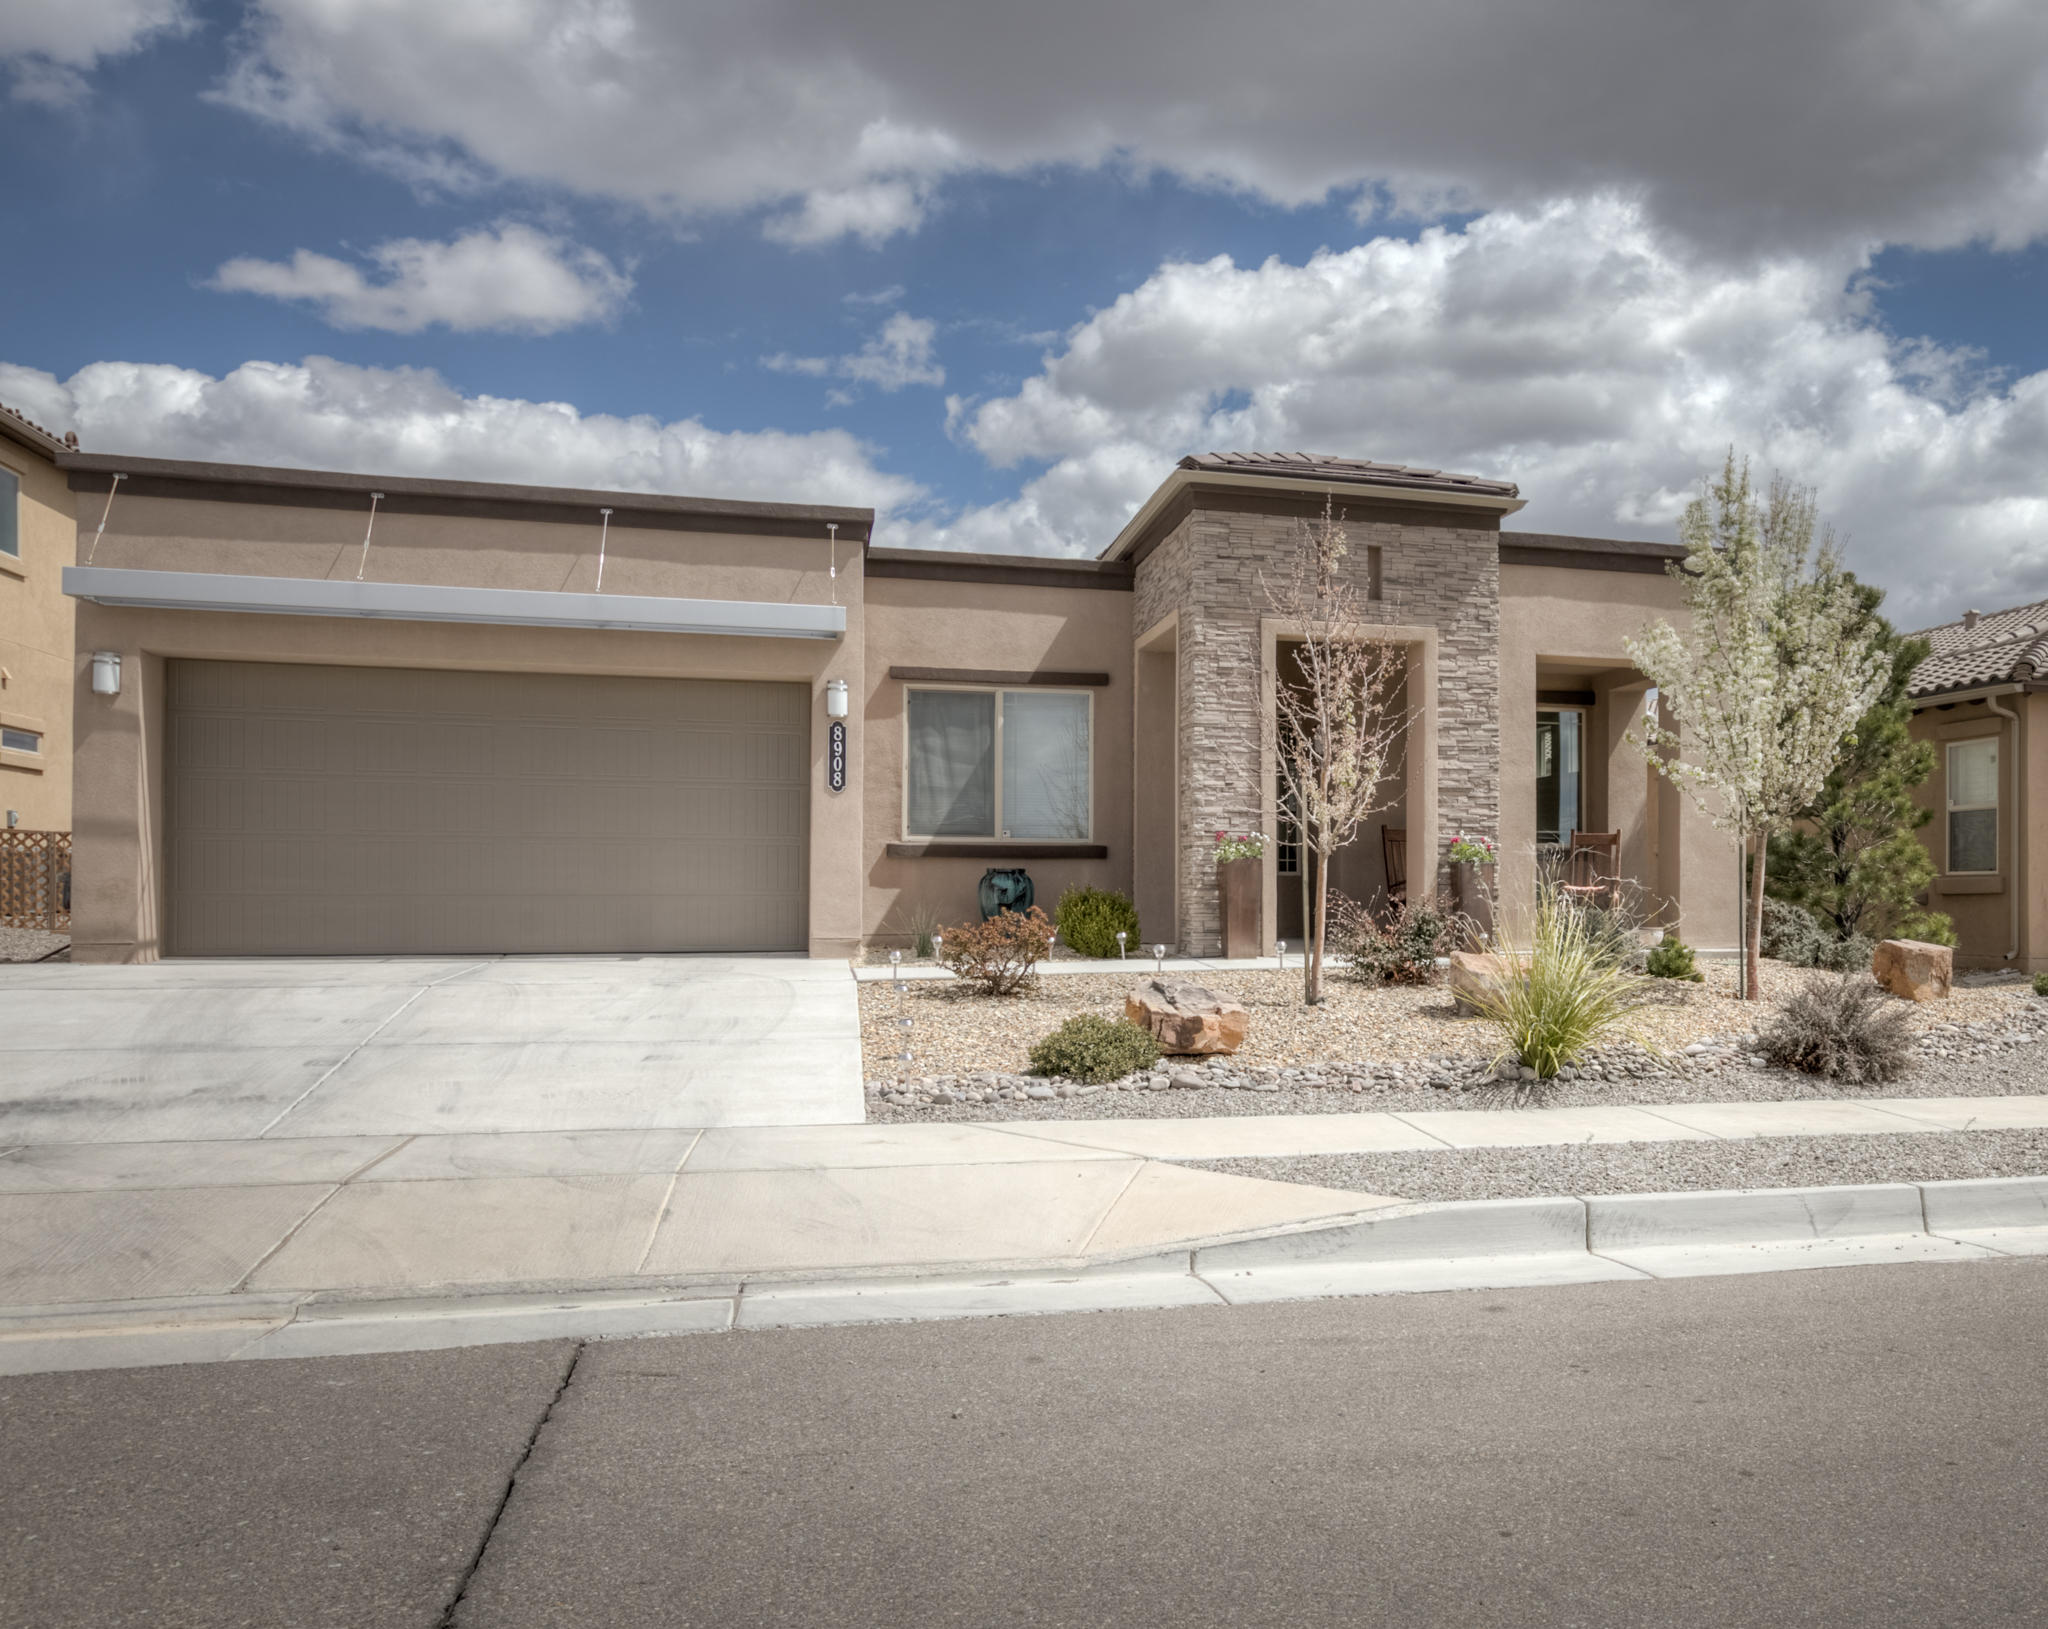 129,000 in Builder Upgrades!! This former DR Horton Model Home is a Build Green NM Silver Level offering energy efficiency throughout the year.  Situated on a view lot and quiet cul de sac street, this 2304 sf single story home has a spacious open floor plan.  The upgraded kitchen boasts quartz countertops, upgraded appliances, large island and a beverage center.  Large master suite includes a walk-in closet with a closet storage system.  Perfect for entertaining, the backyard is quiet and has its own gas fireplace.  There are too many special features to list!  Come see this amazing home.